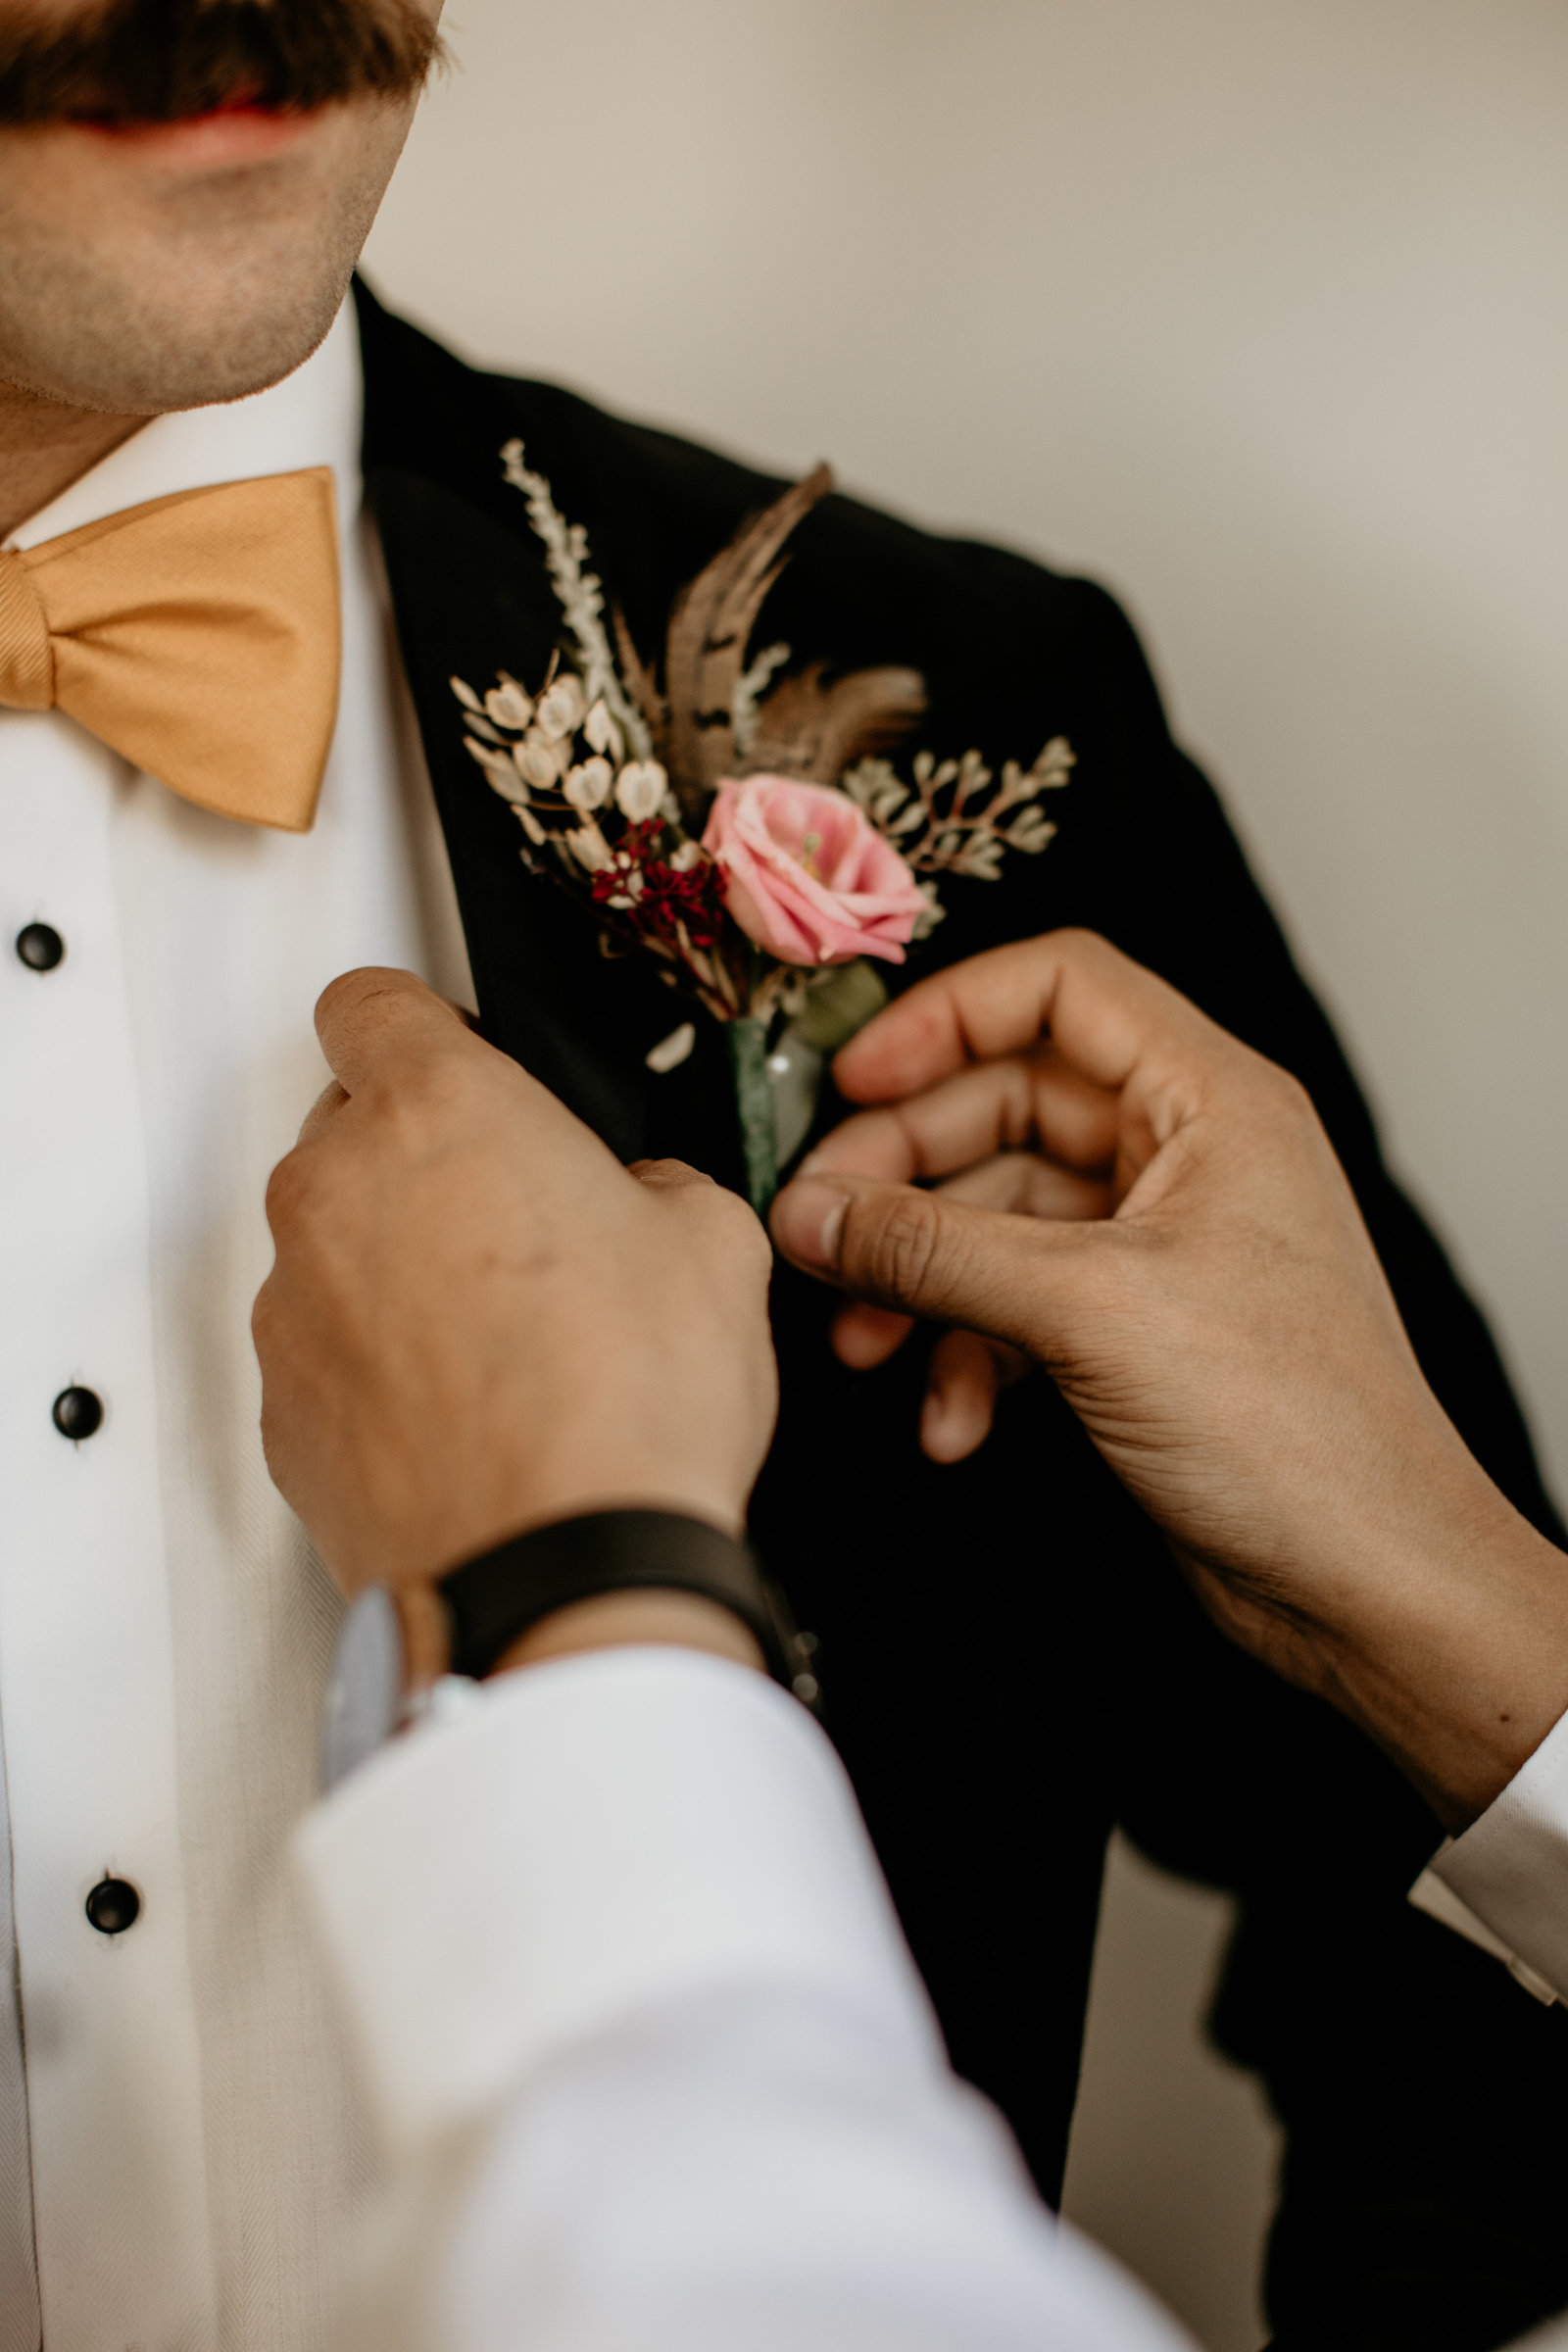 Grooms boutonnière is fasten to his suit jacket.